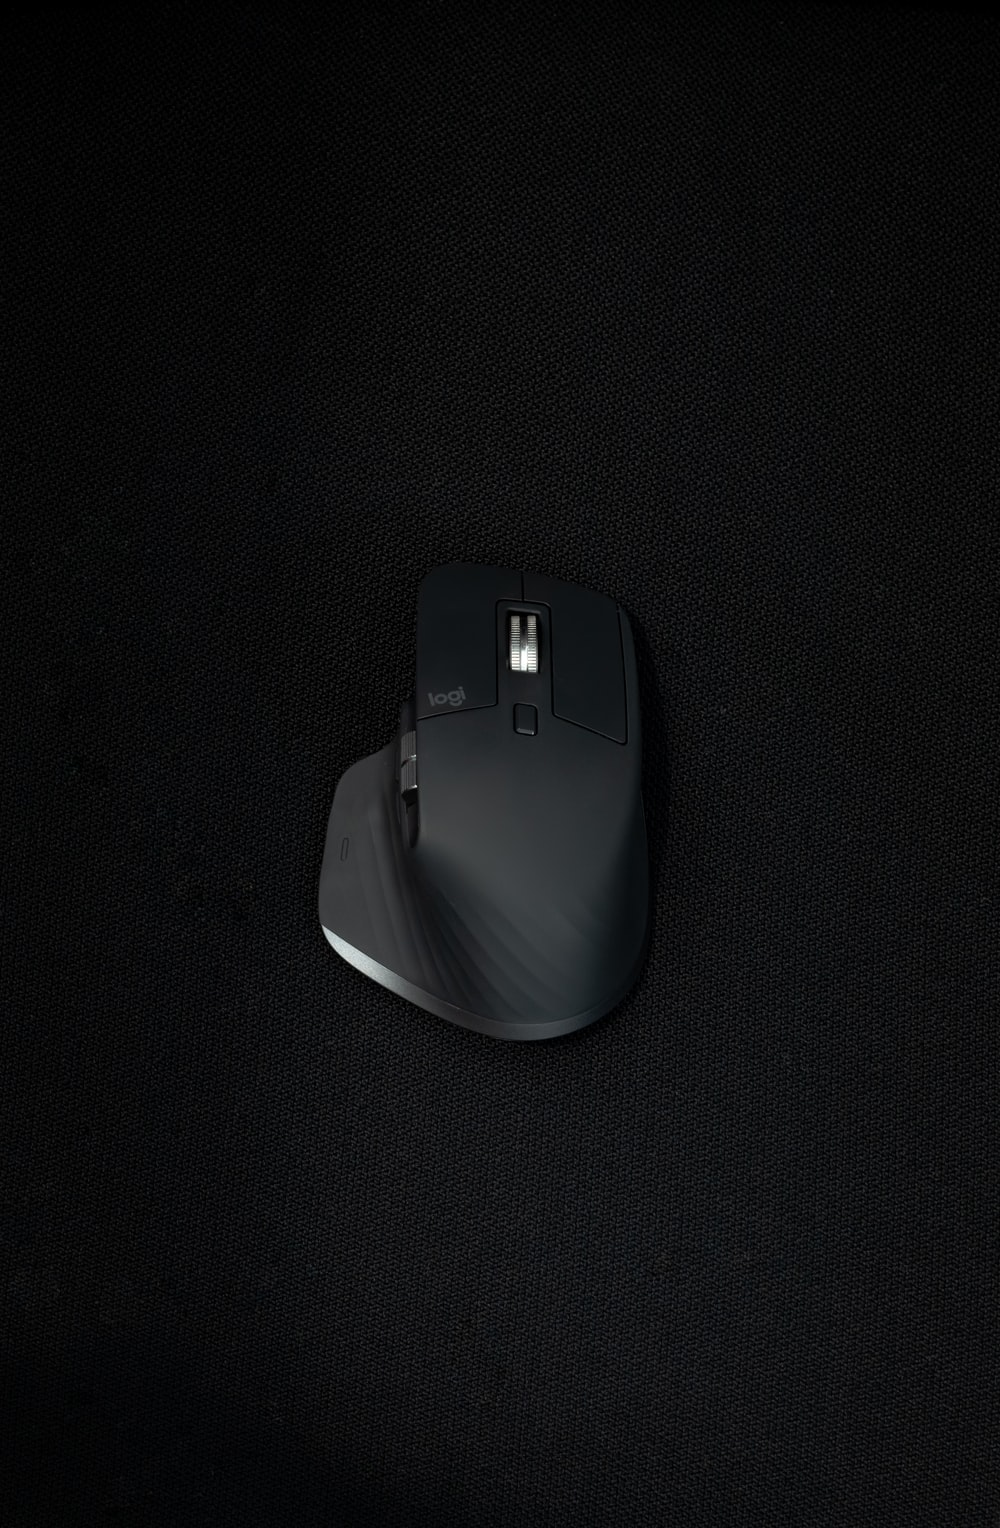 black and white cordless computer mouse